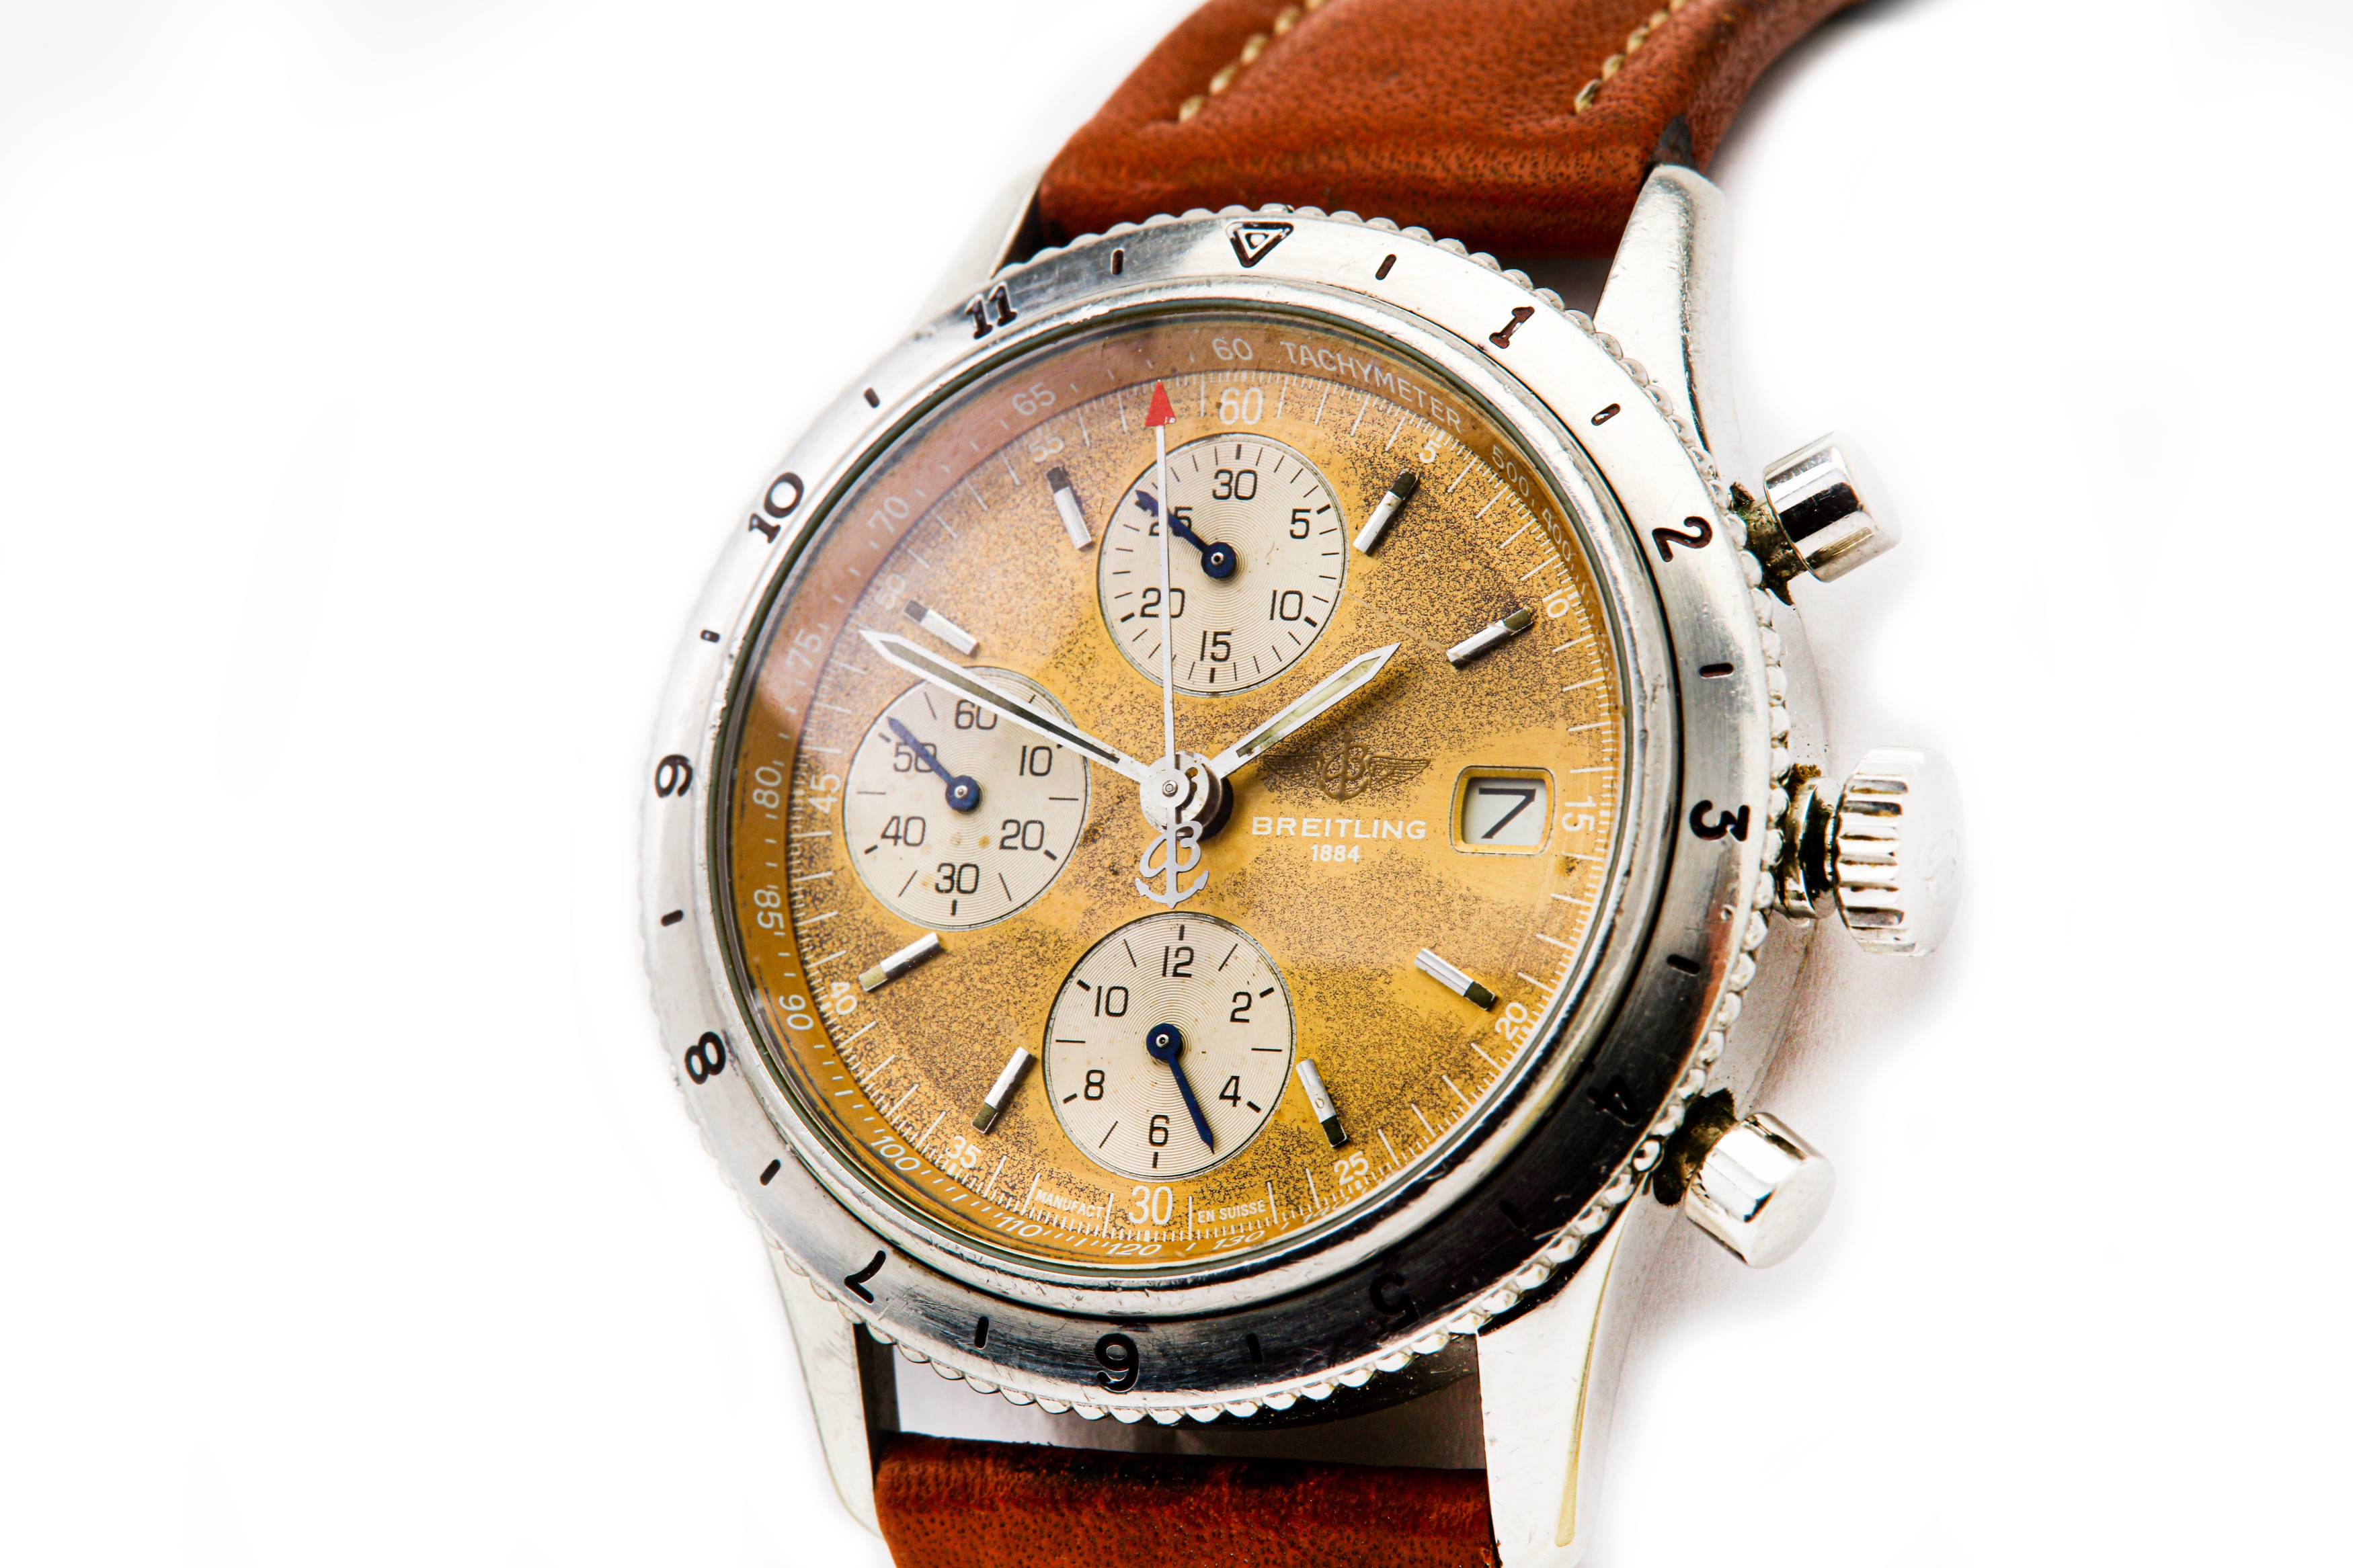 BREITLING. - Image 2 of 4